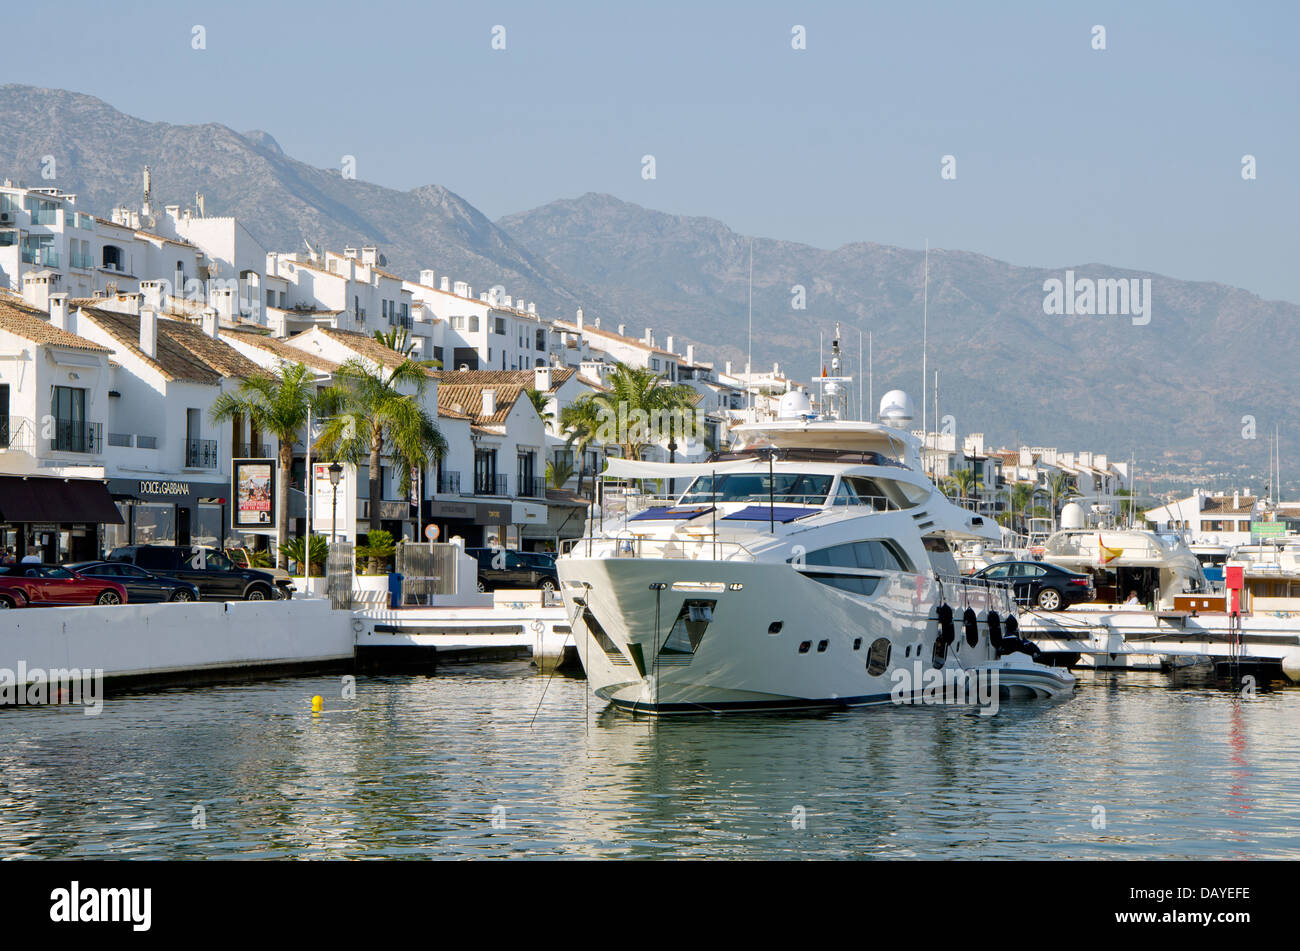 The marina of Puerto banus in marbella with la concha in the background - Stock Image